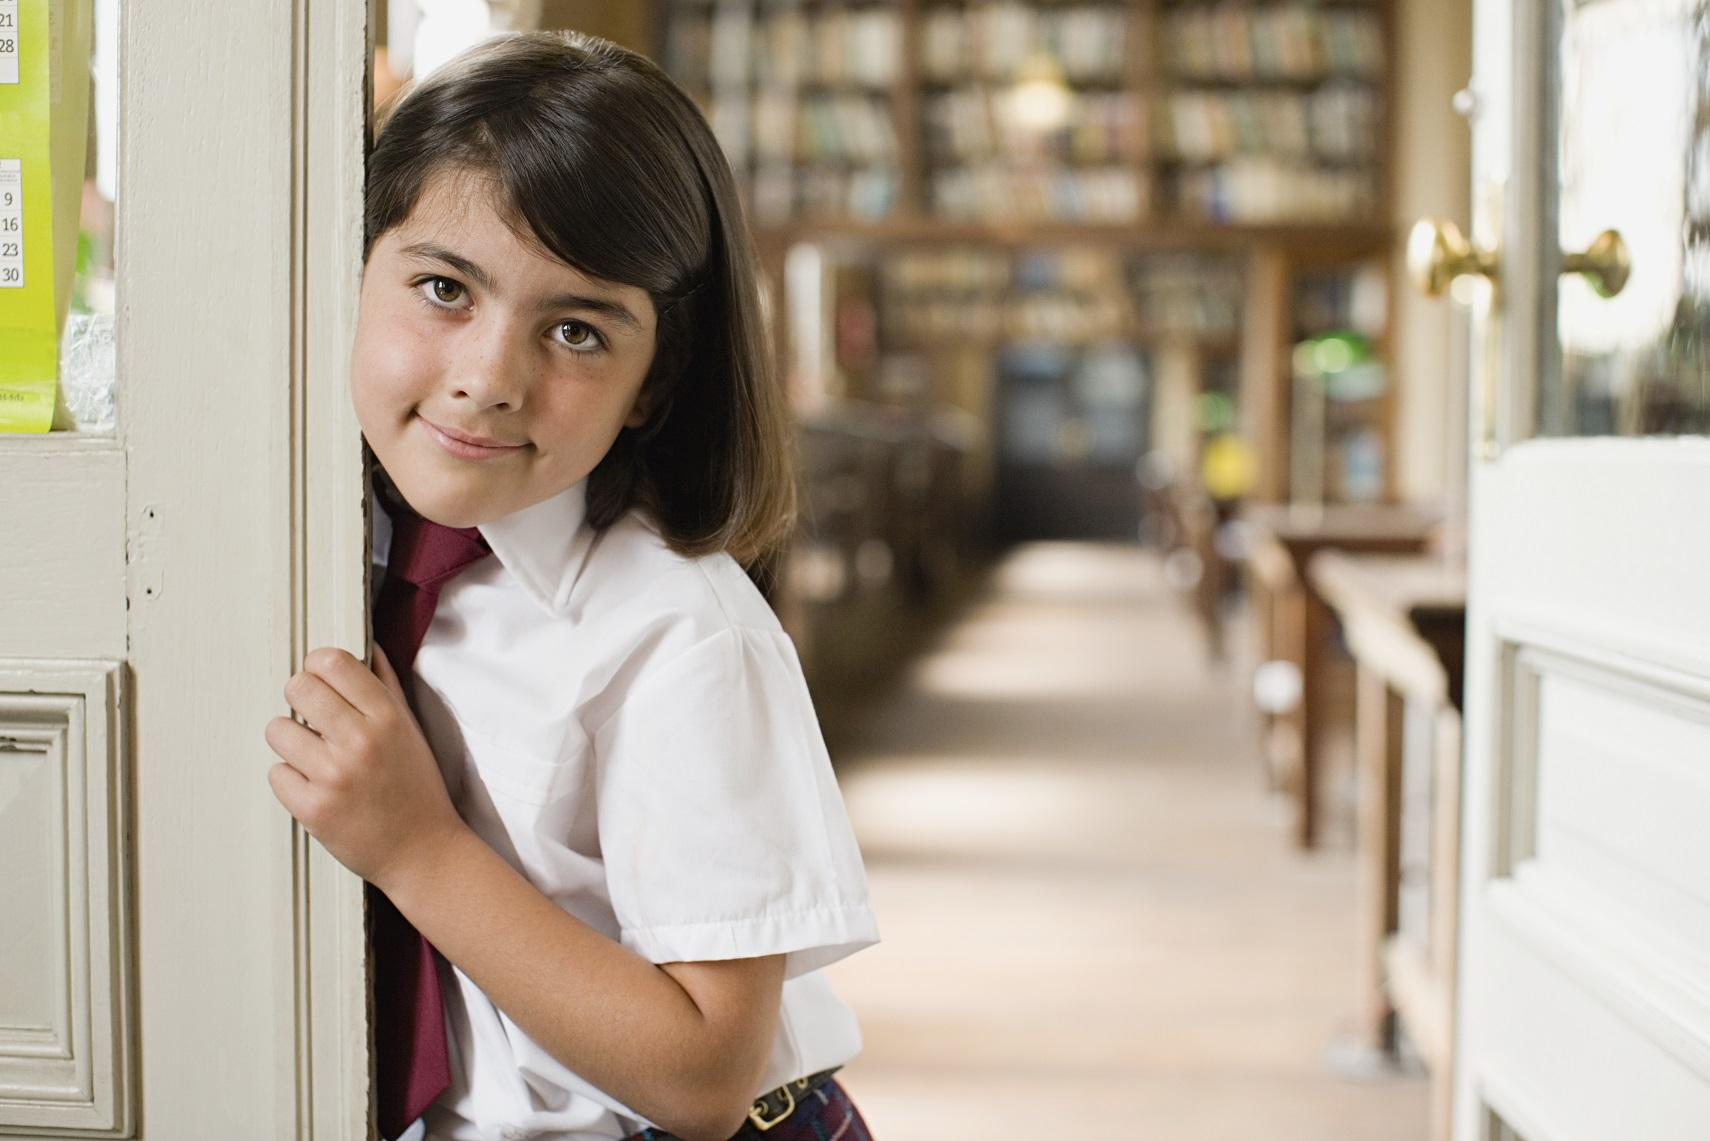 Boarding School For Children: What Parents Need To Know